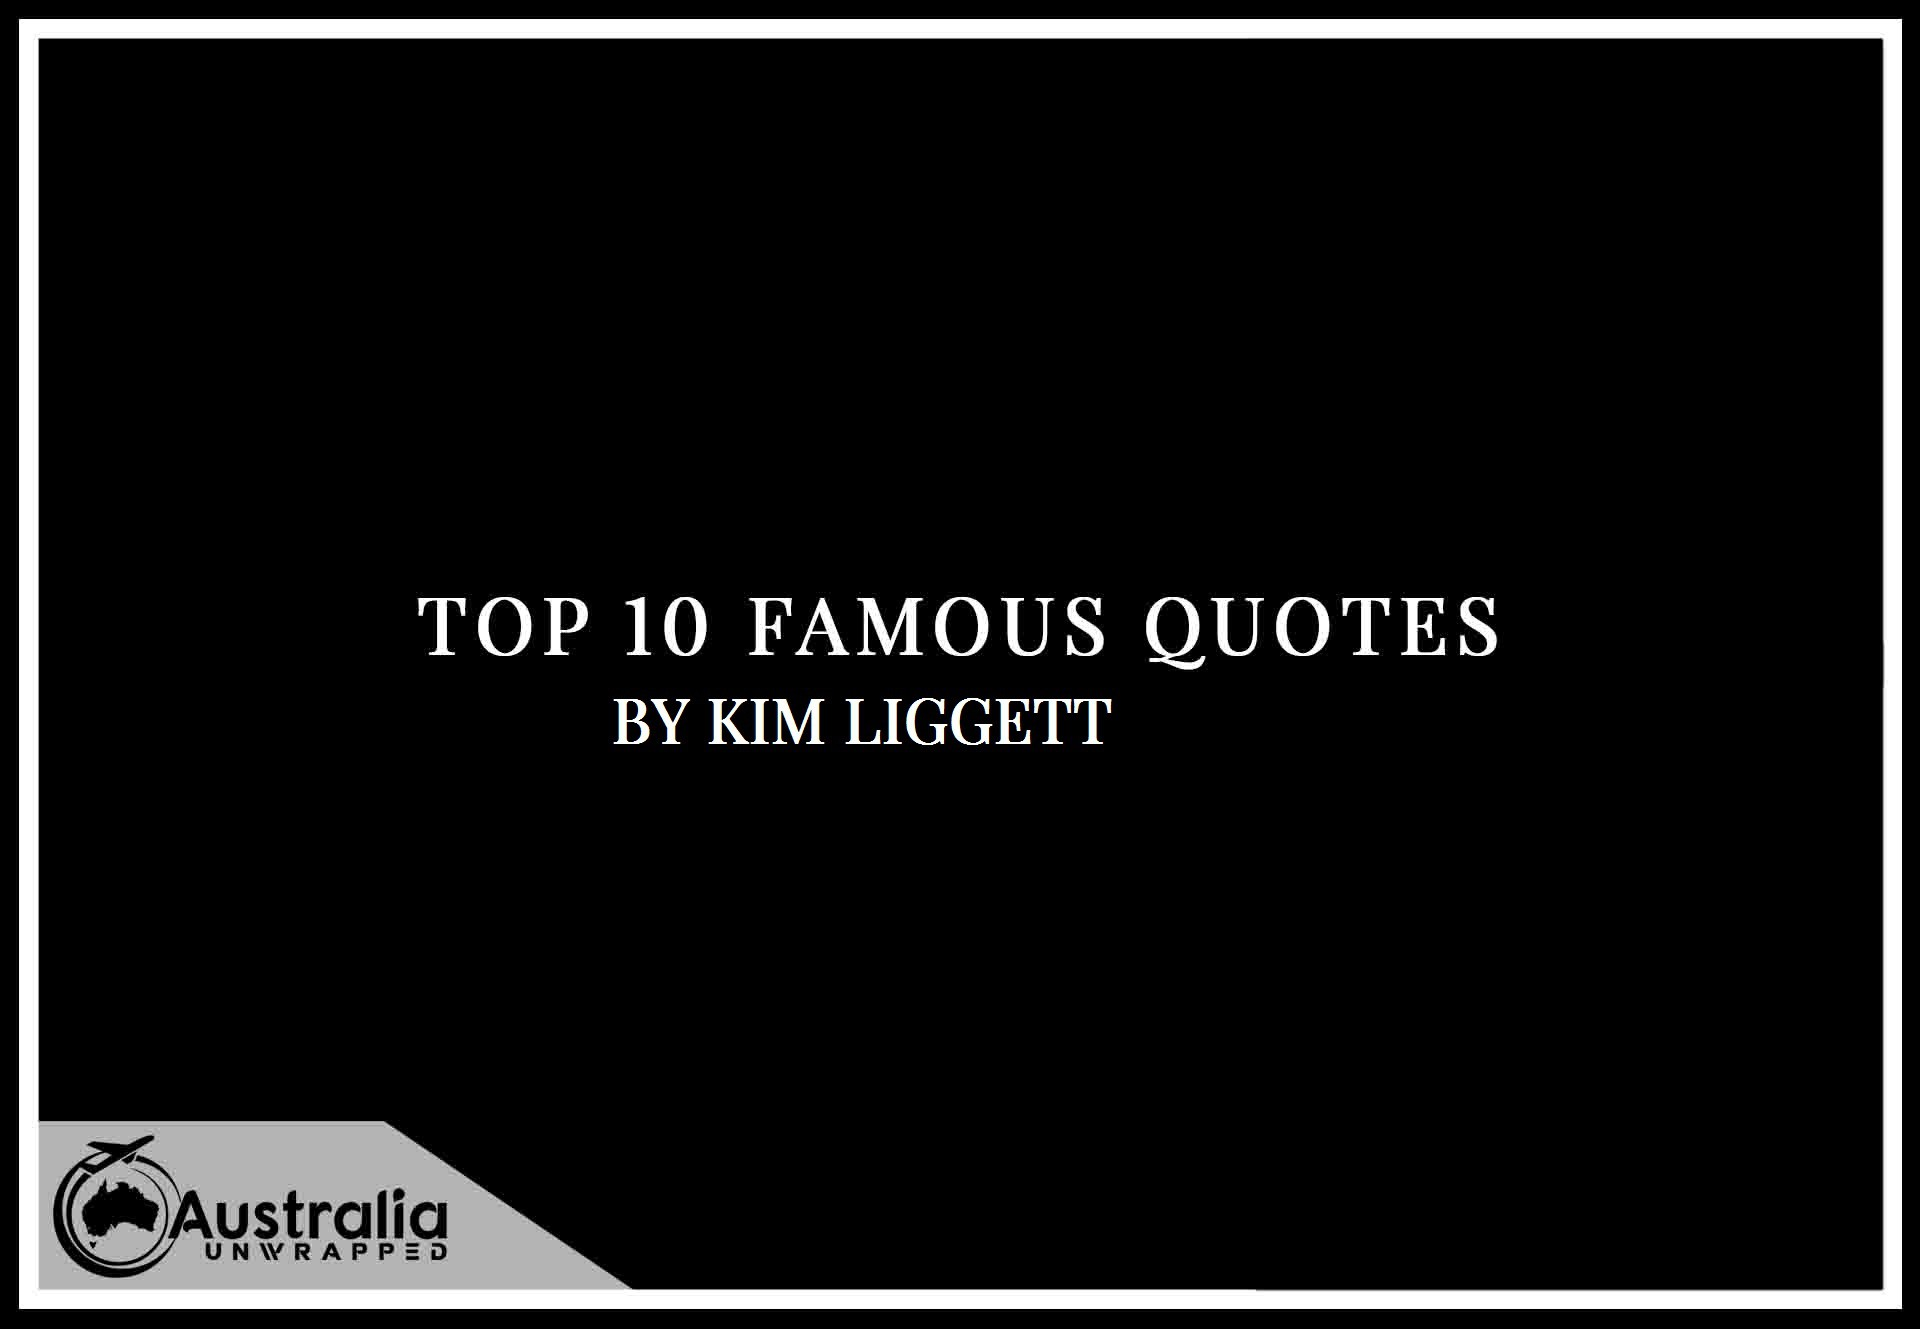 Kim Liggett's Top 10 Popular and Famous Quotes